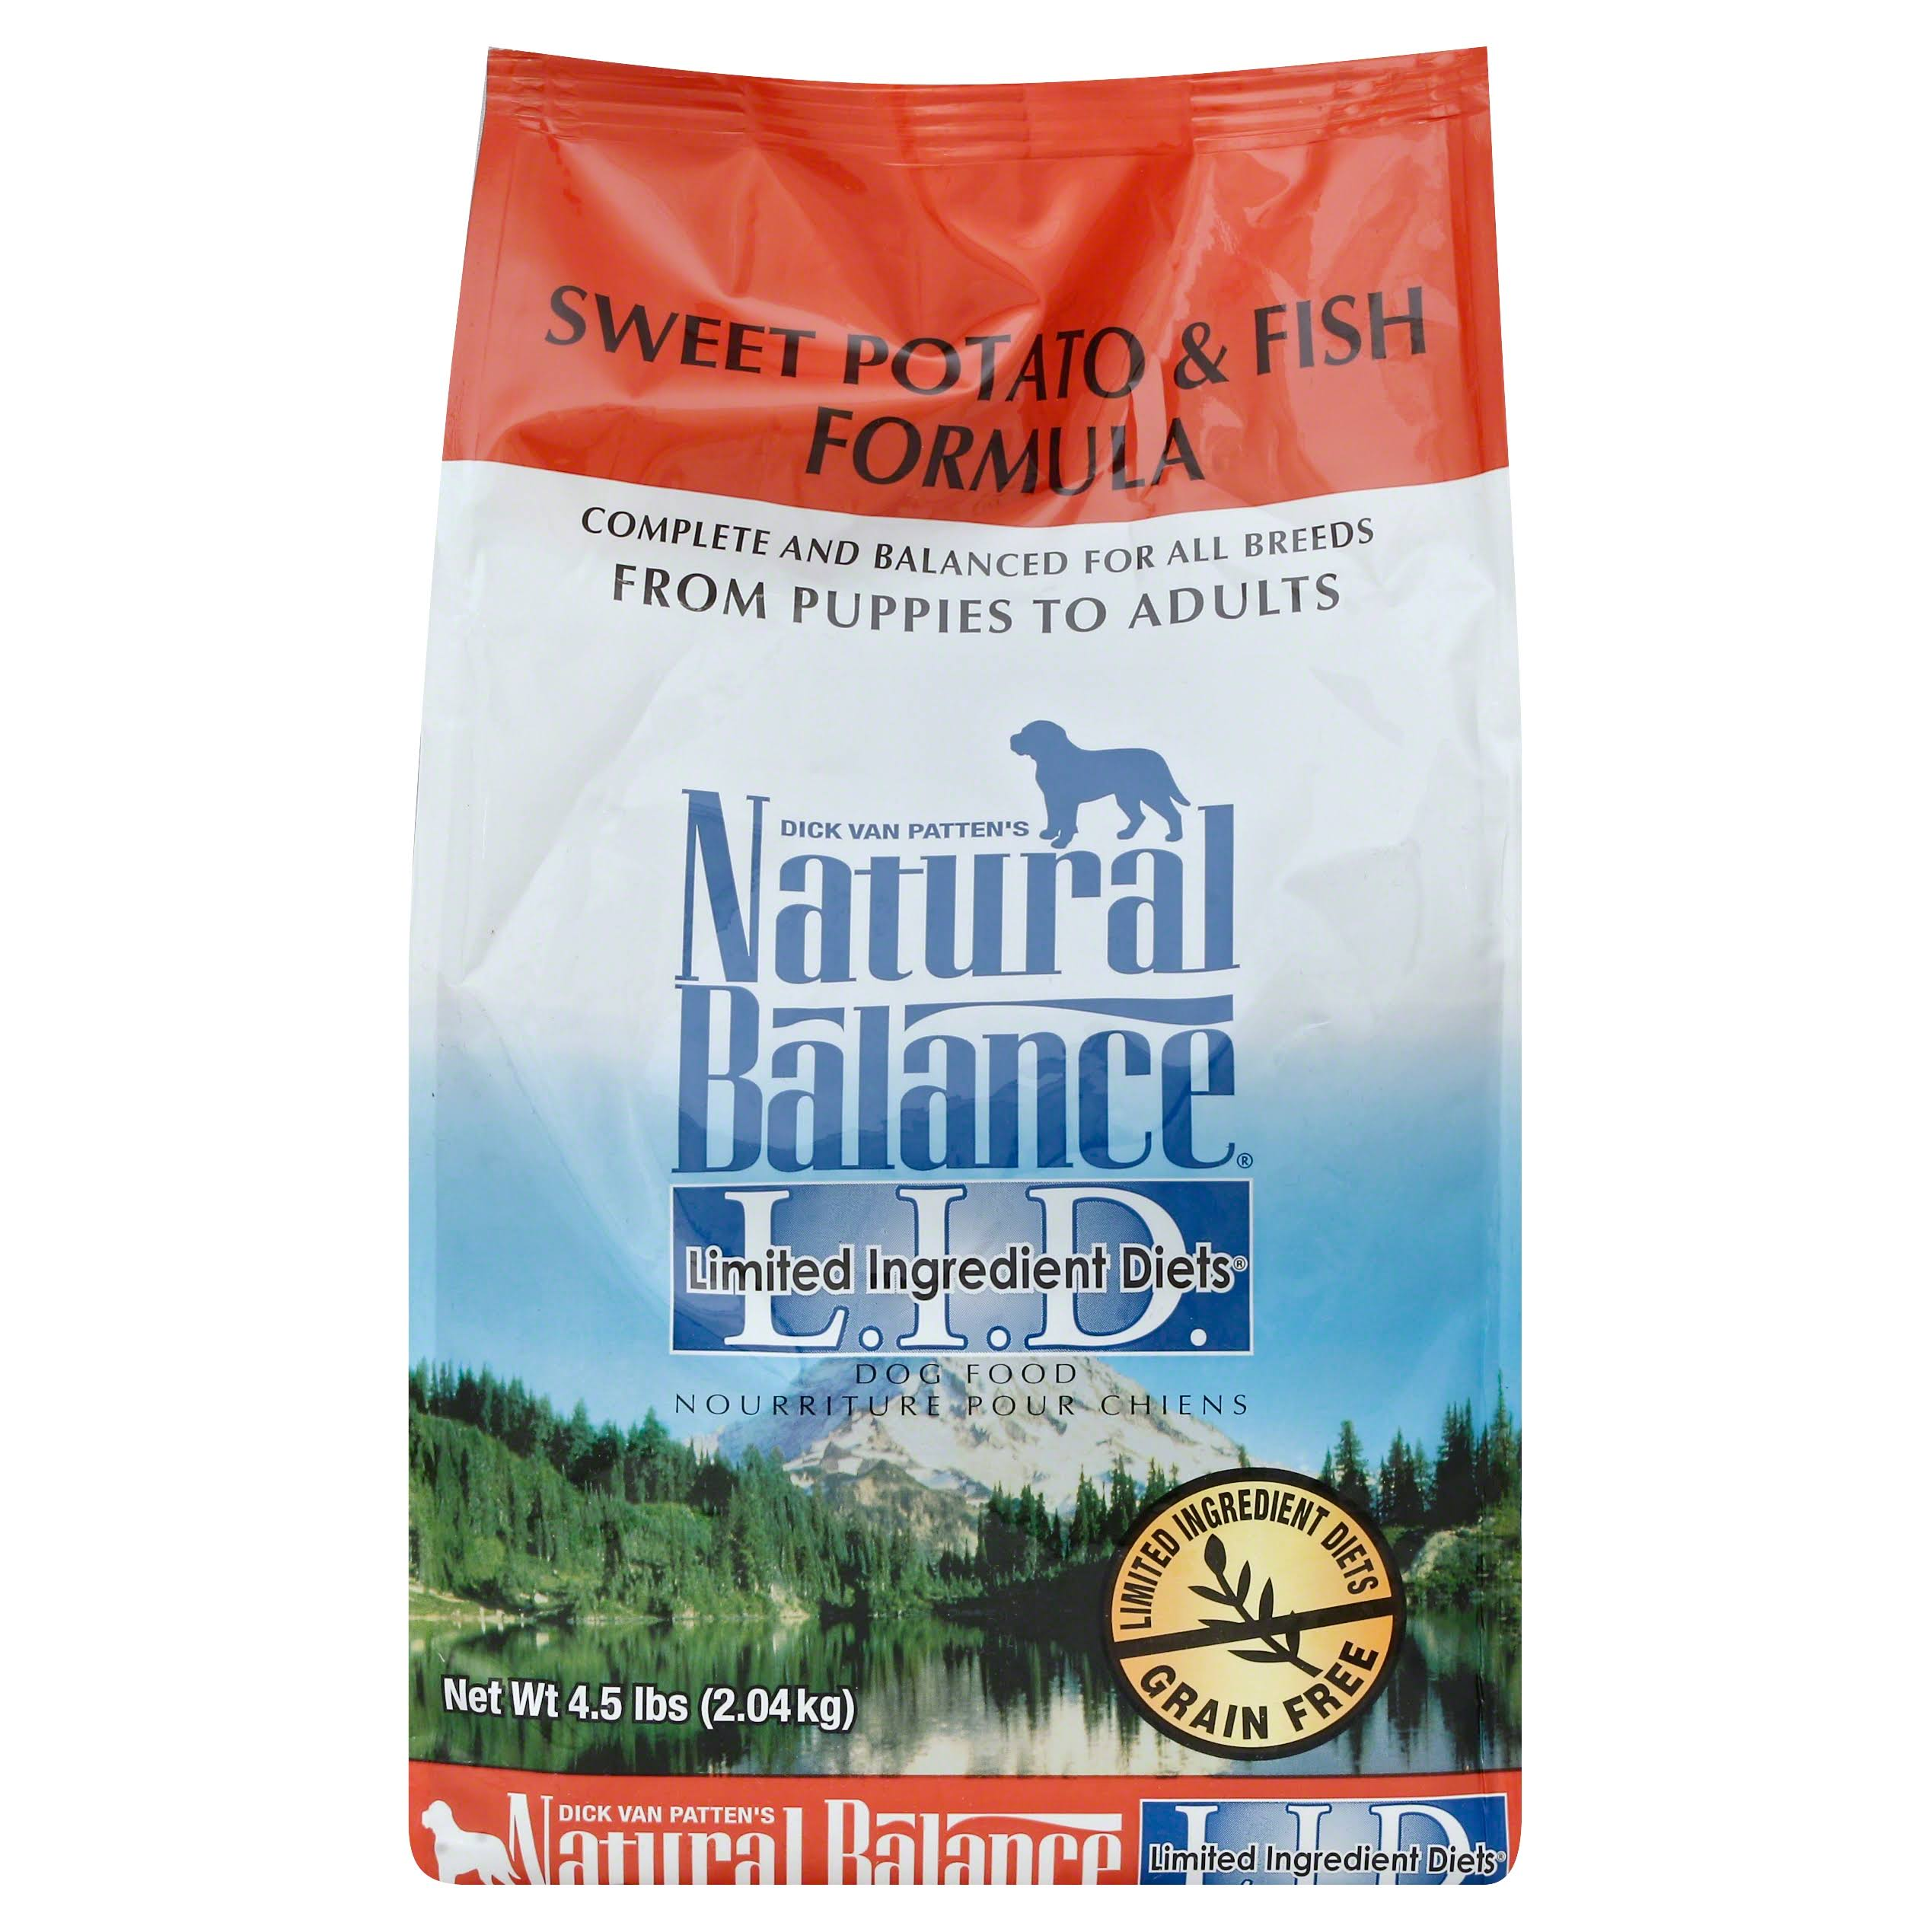 Dick Van Patten's Natural Balance Lid Sweet Potato And Fish Dry Dog Food - 4.5lbs